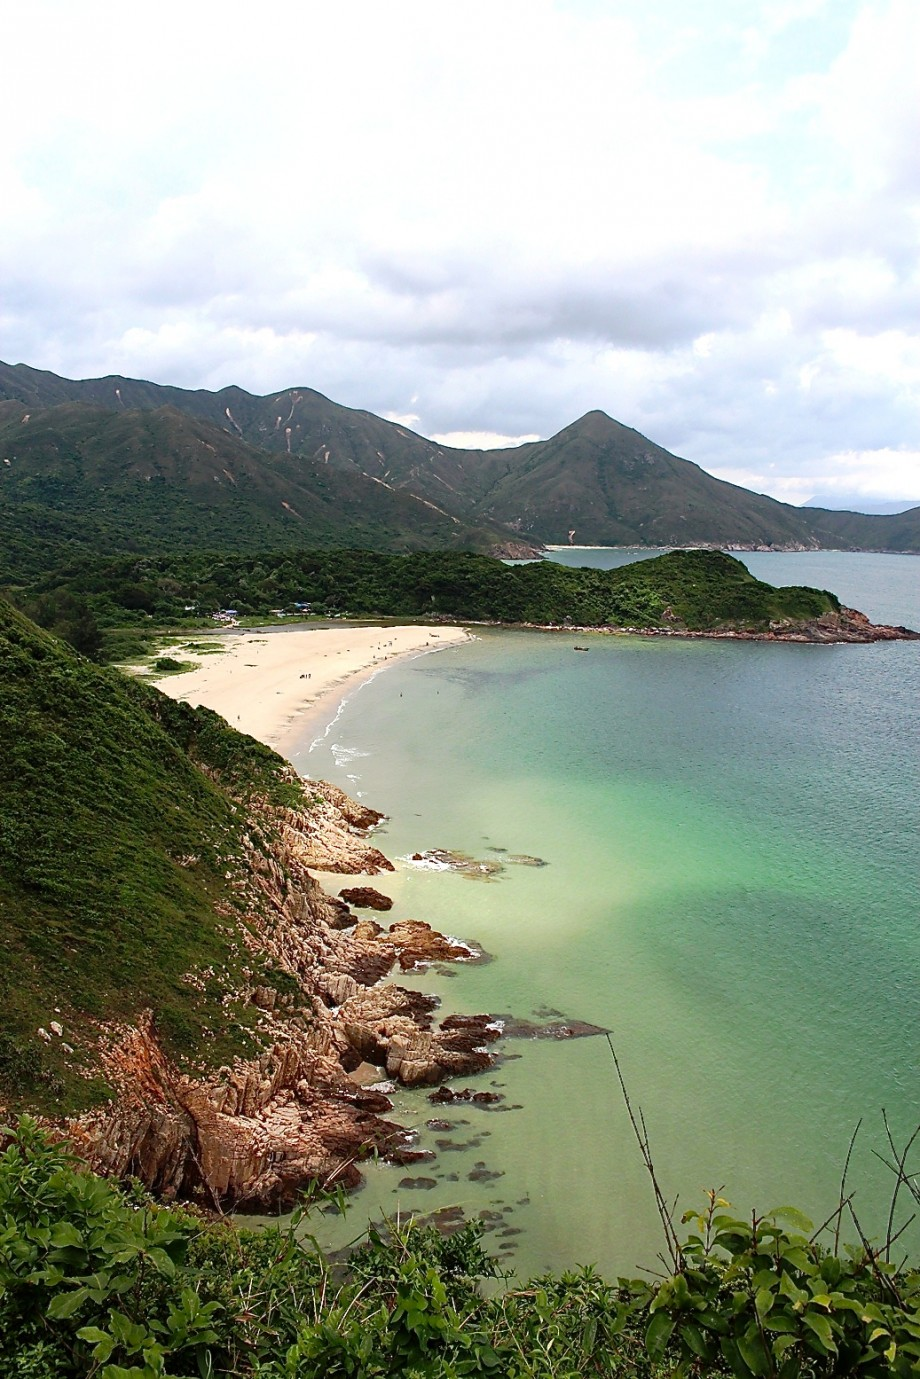 photo4 (Tai Long Wan)